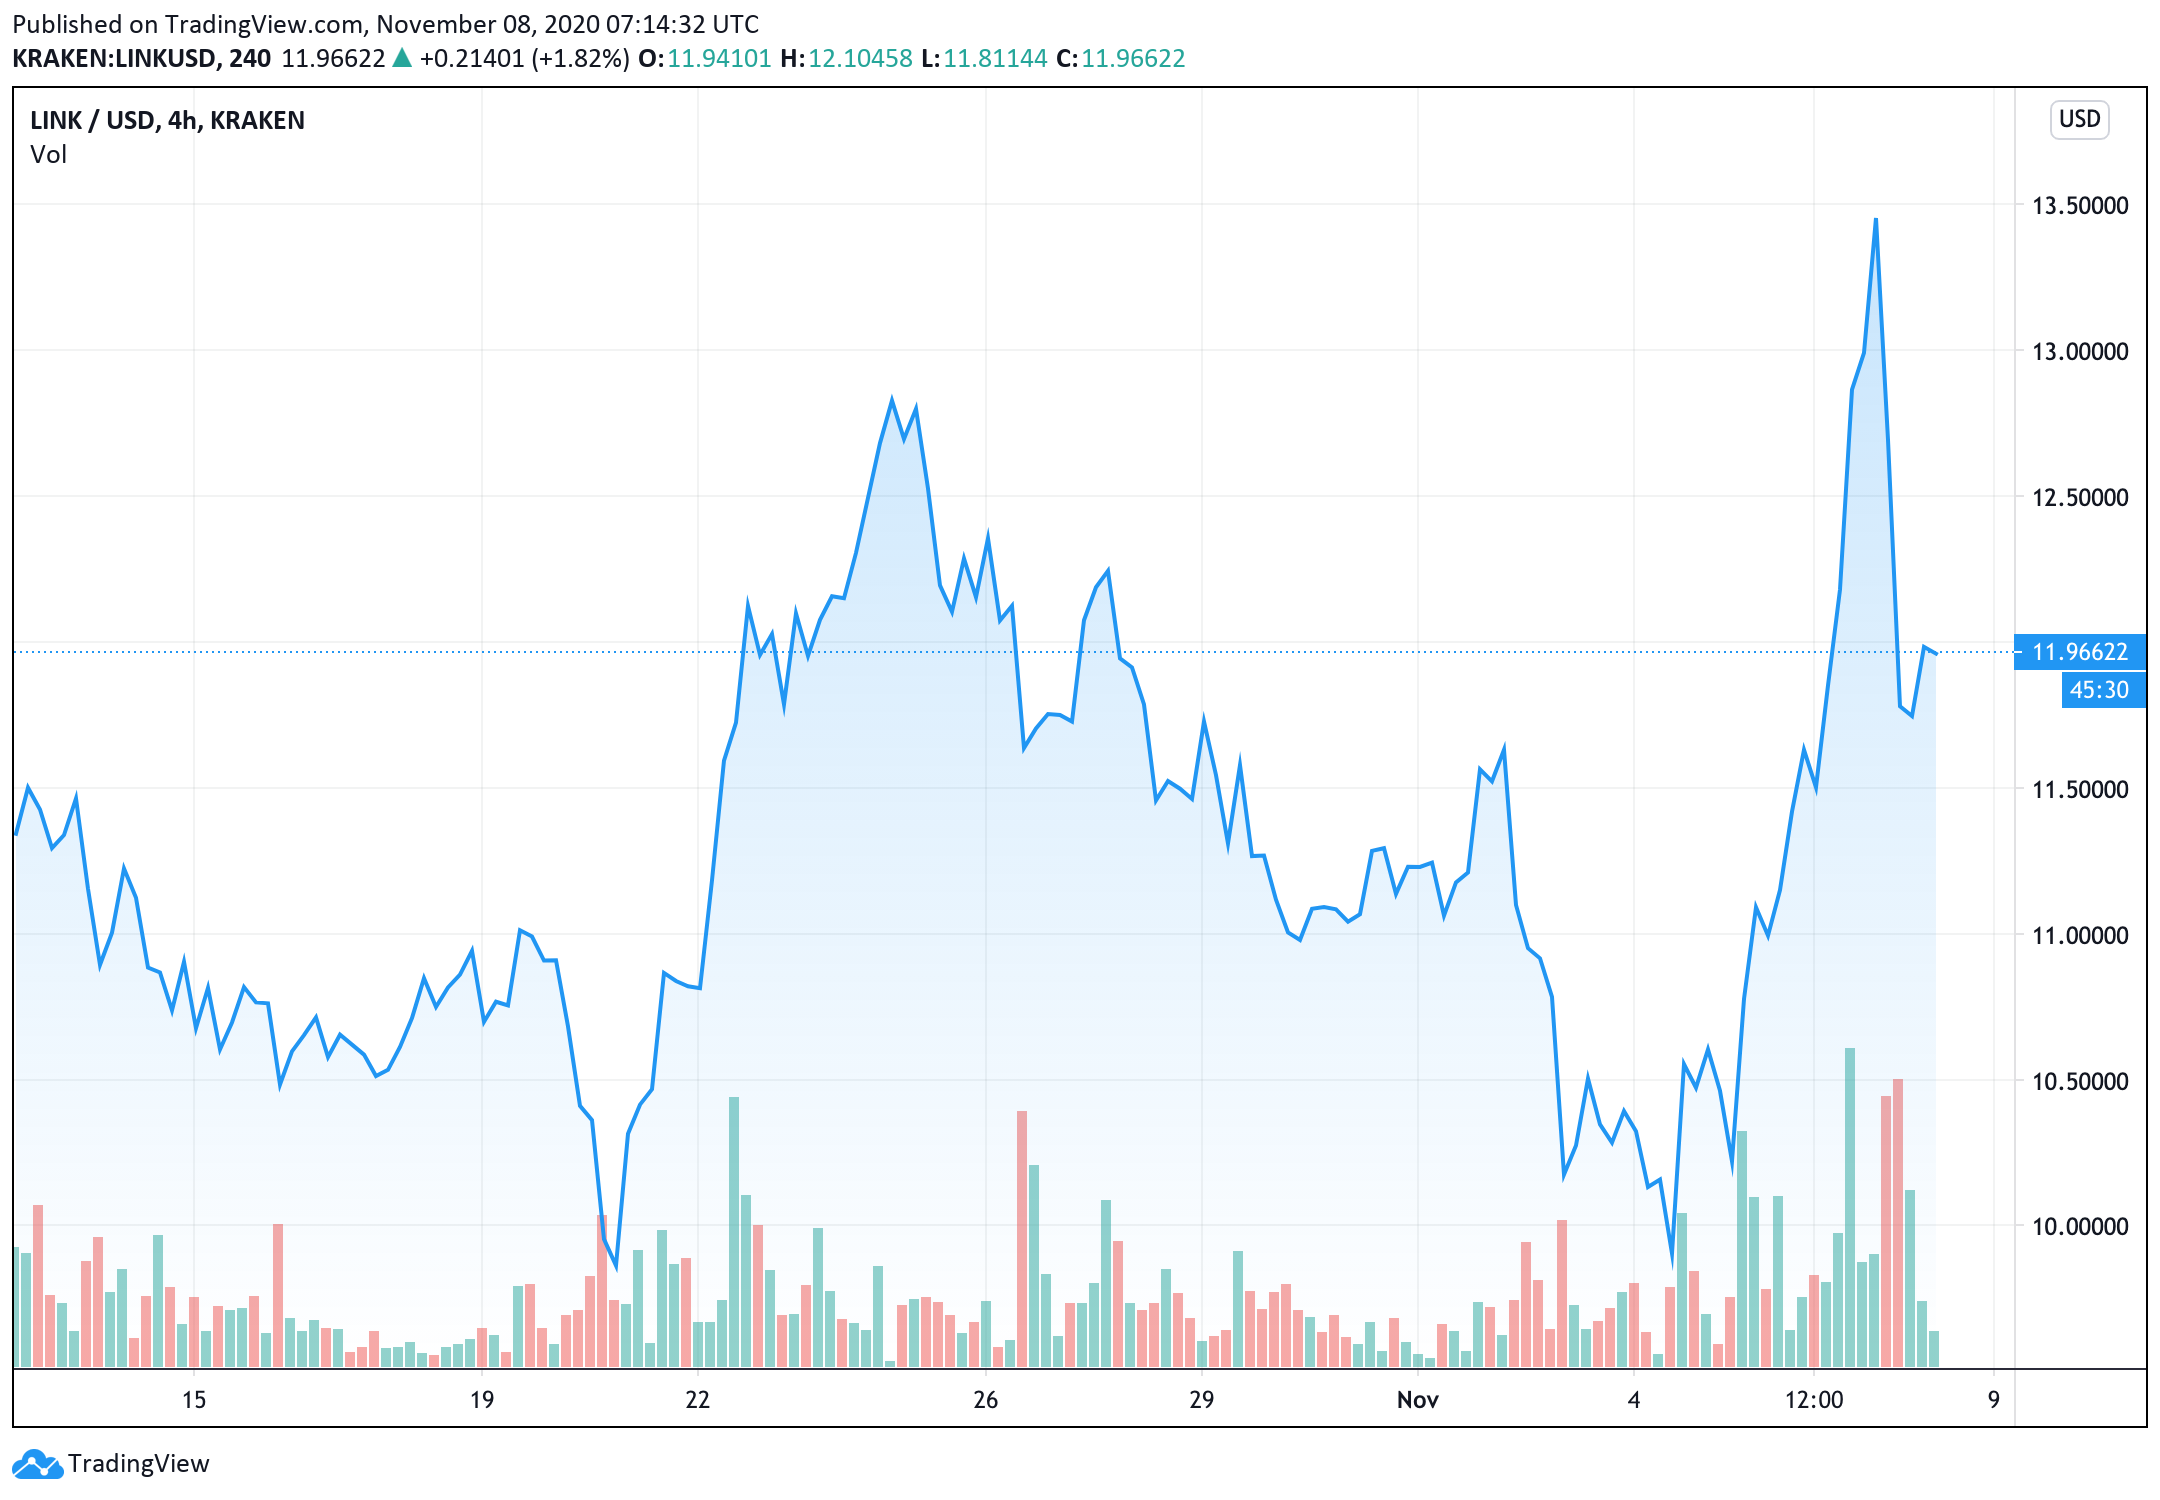 chainlinks-high-funding-rates-as-one-reason-why-it-may-see-a-sustained-pullback-in-the-short-term